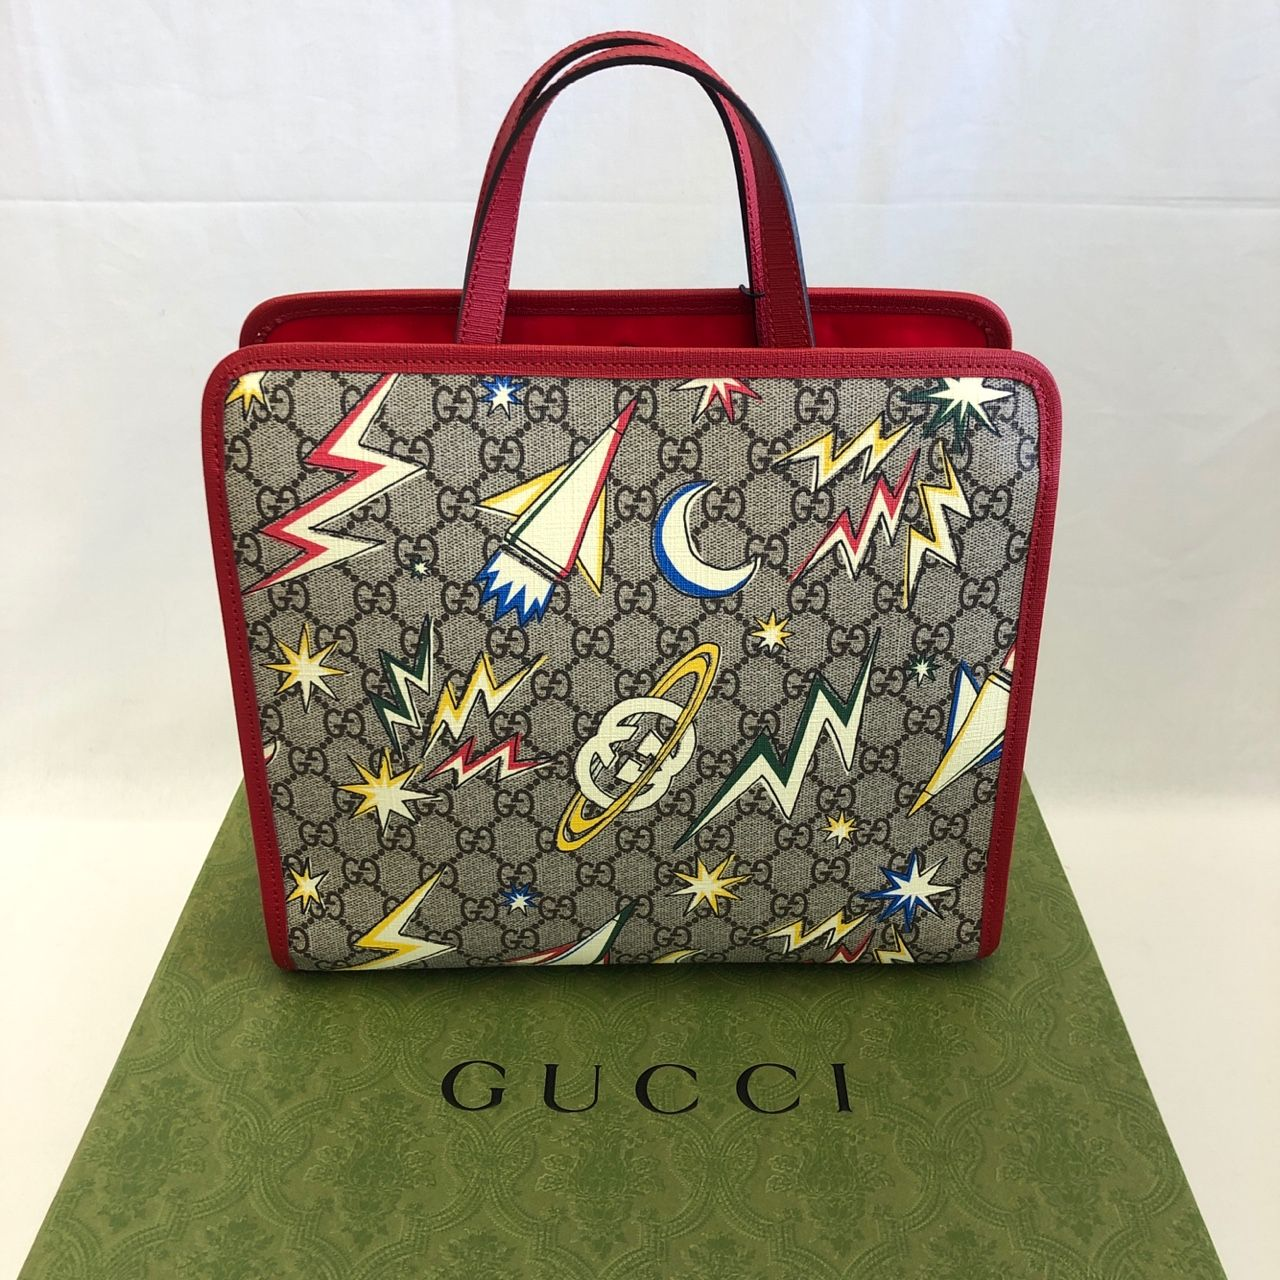 Gucci Childrens GG space print tote bag GG Supreme space print Style # 605614 2DHAN 9693